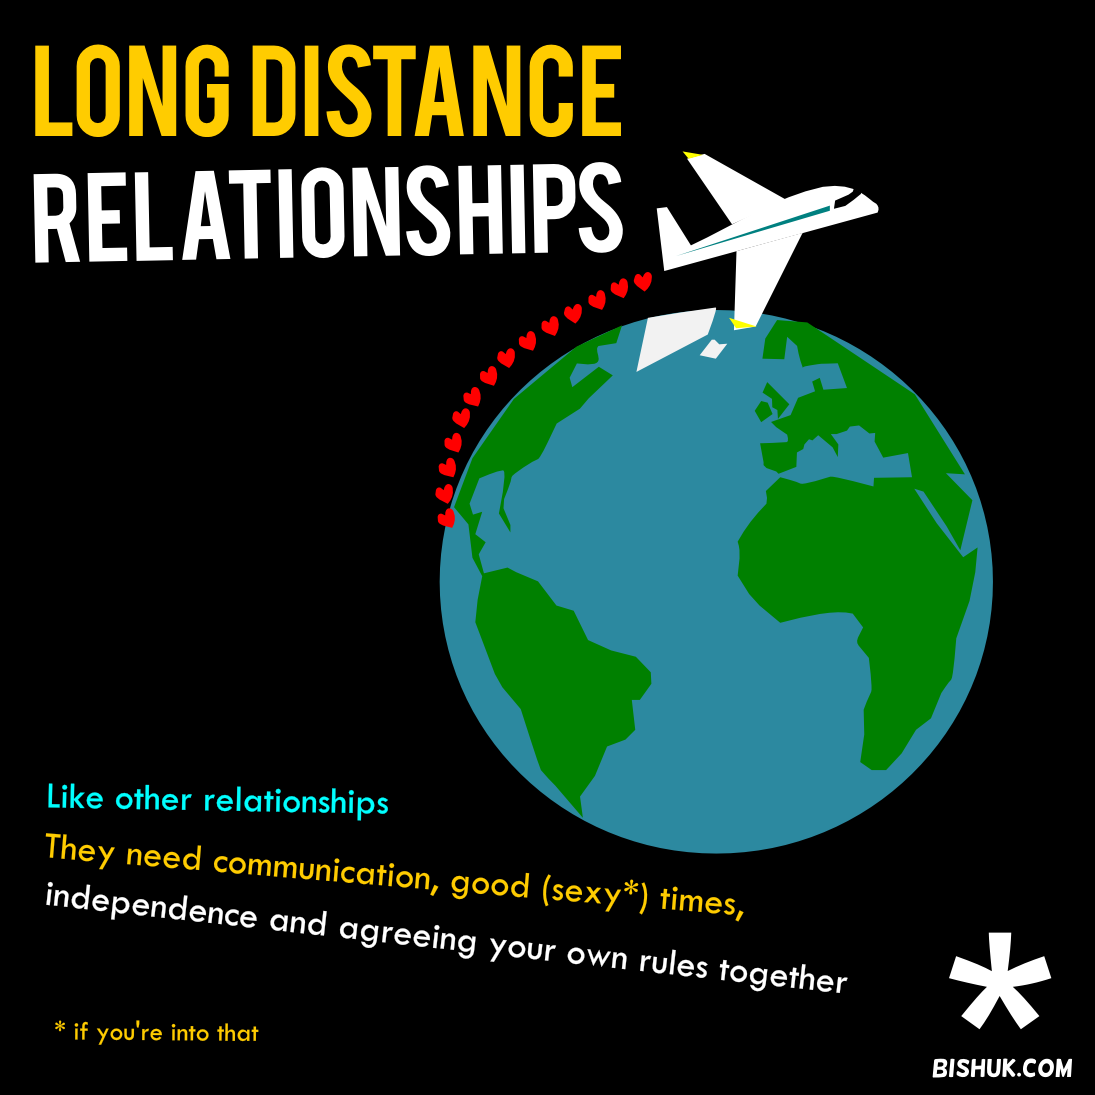 college dating relationships Relationships move faster in college, physically and emotionally basically, three months of college dating (where you can have breakfast, lunch, dinner, and late-night pizza with a guy if you want) is like a year of high school dating.